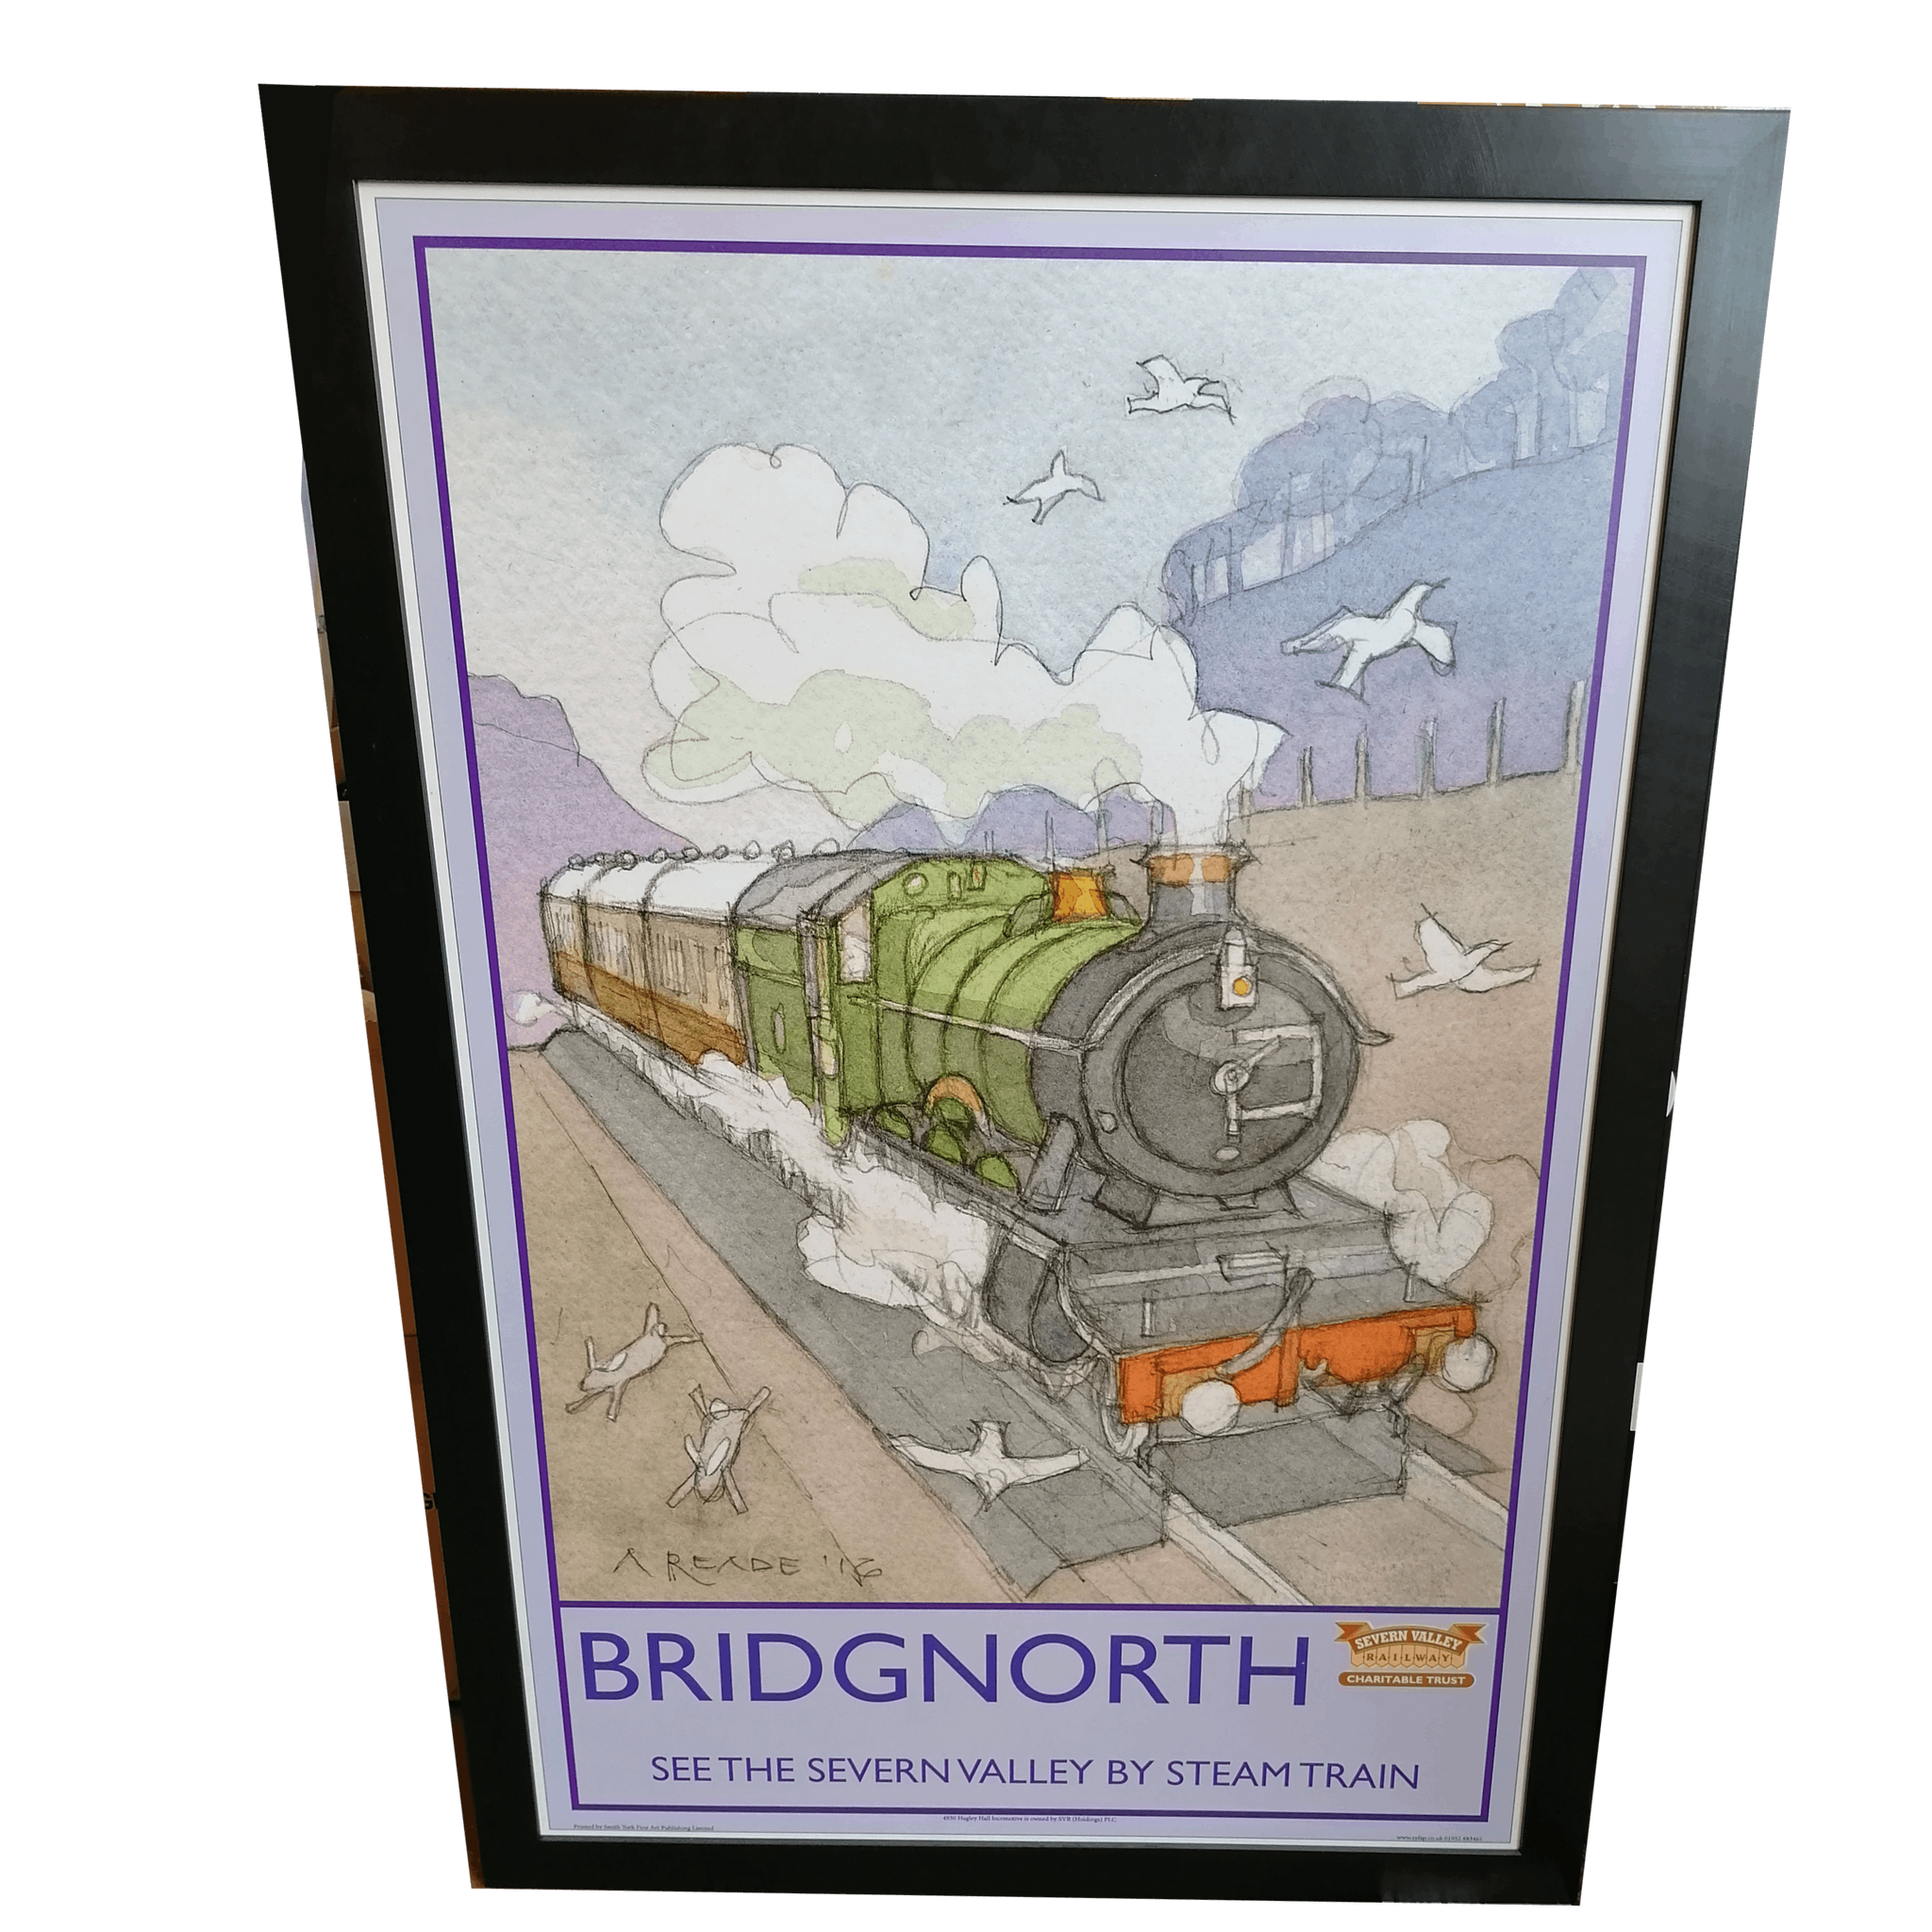 ONLY ONE AVAILABLE Limited Edition Severn Valley Railway Bridgnorth Artwork (Framed) by Alan Reade